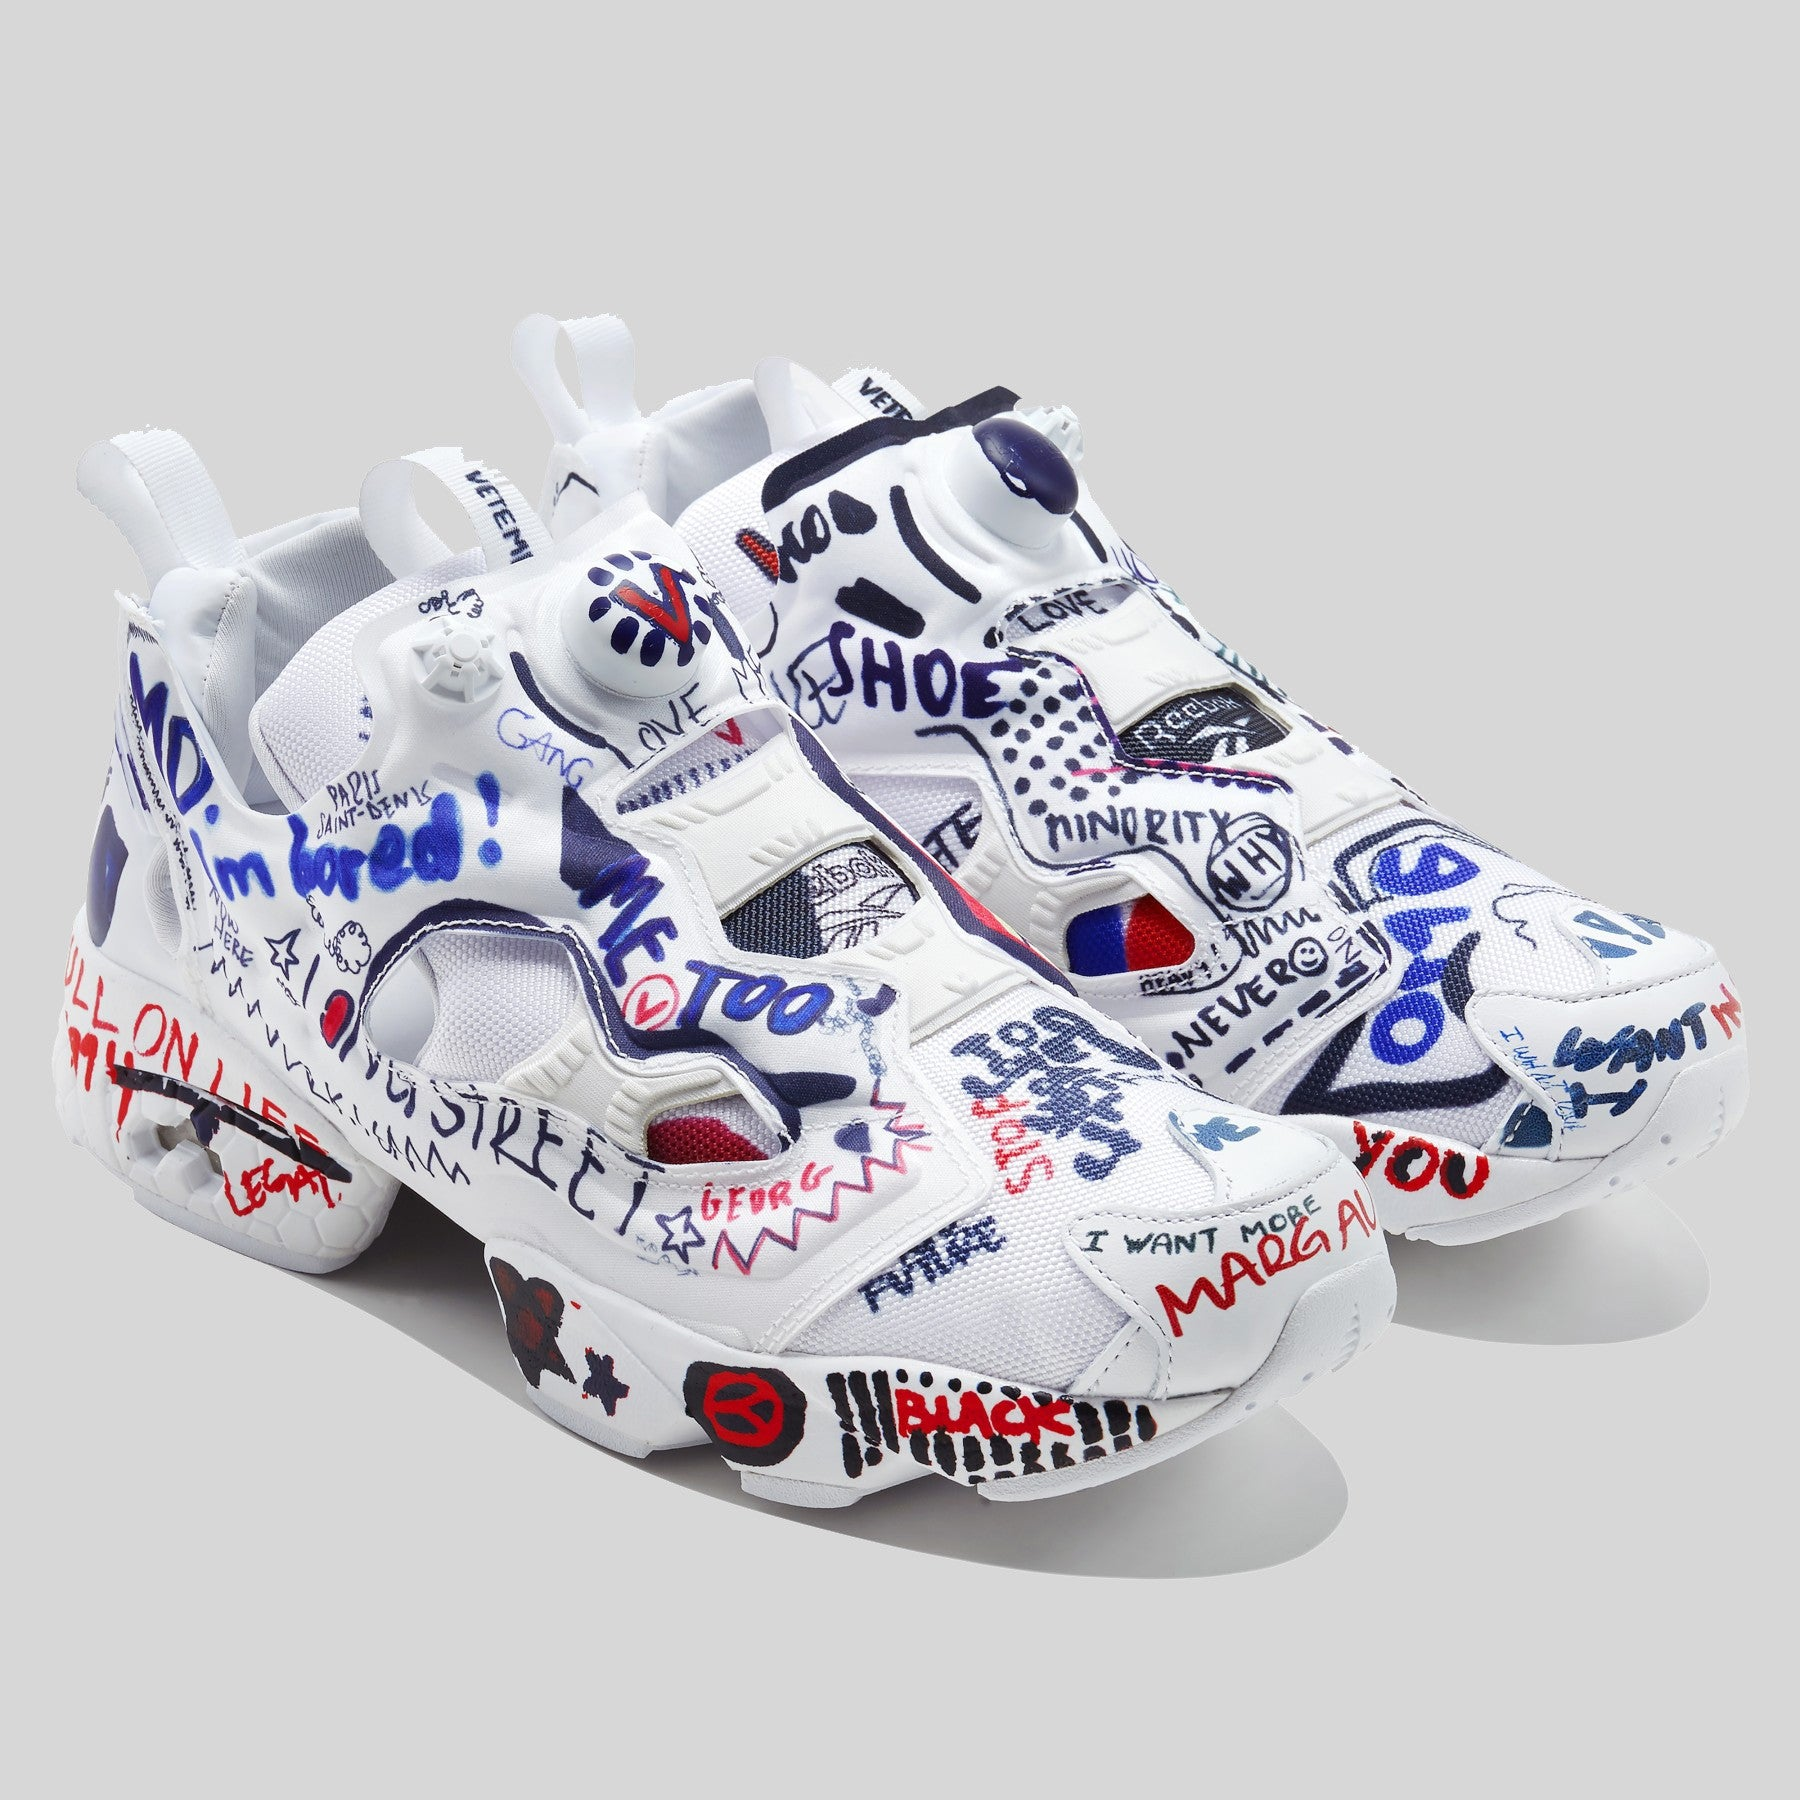 92924c05 Vetements x Reebok Insta Pump Fury Graffiti (BS7031) | KIX-FILES